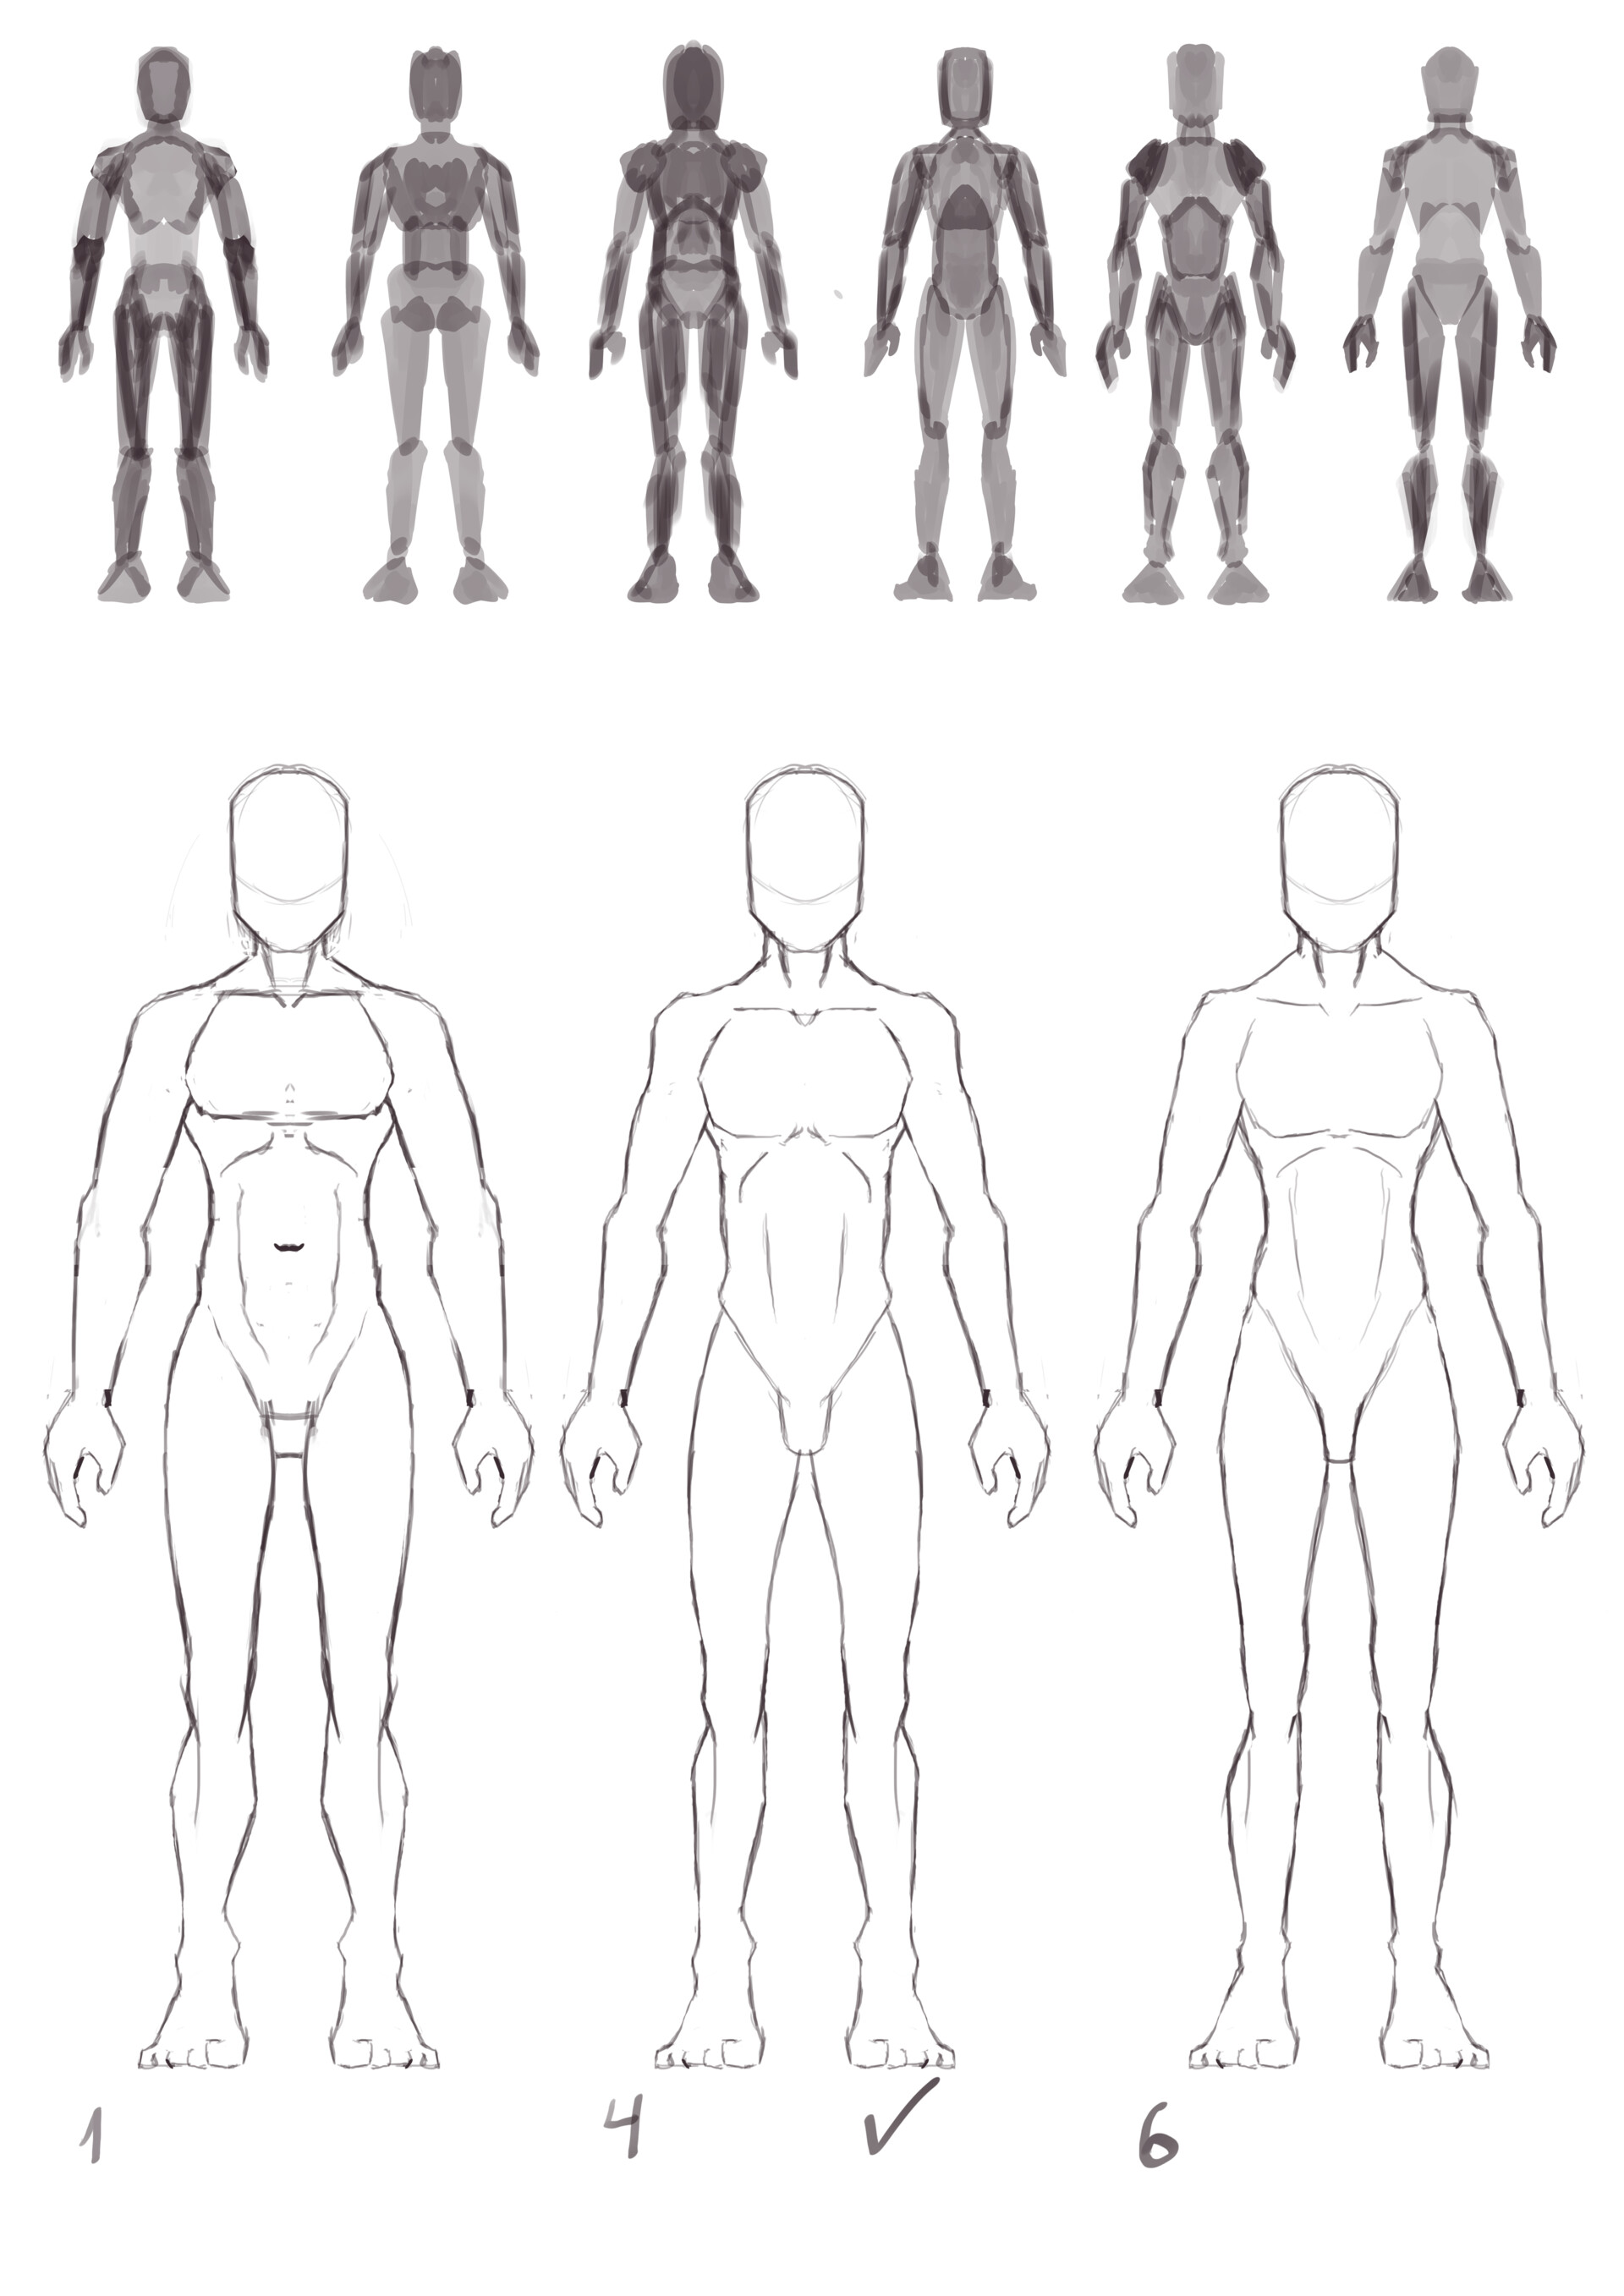 Body sketches and thumbs